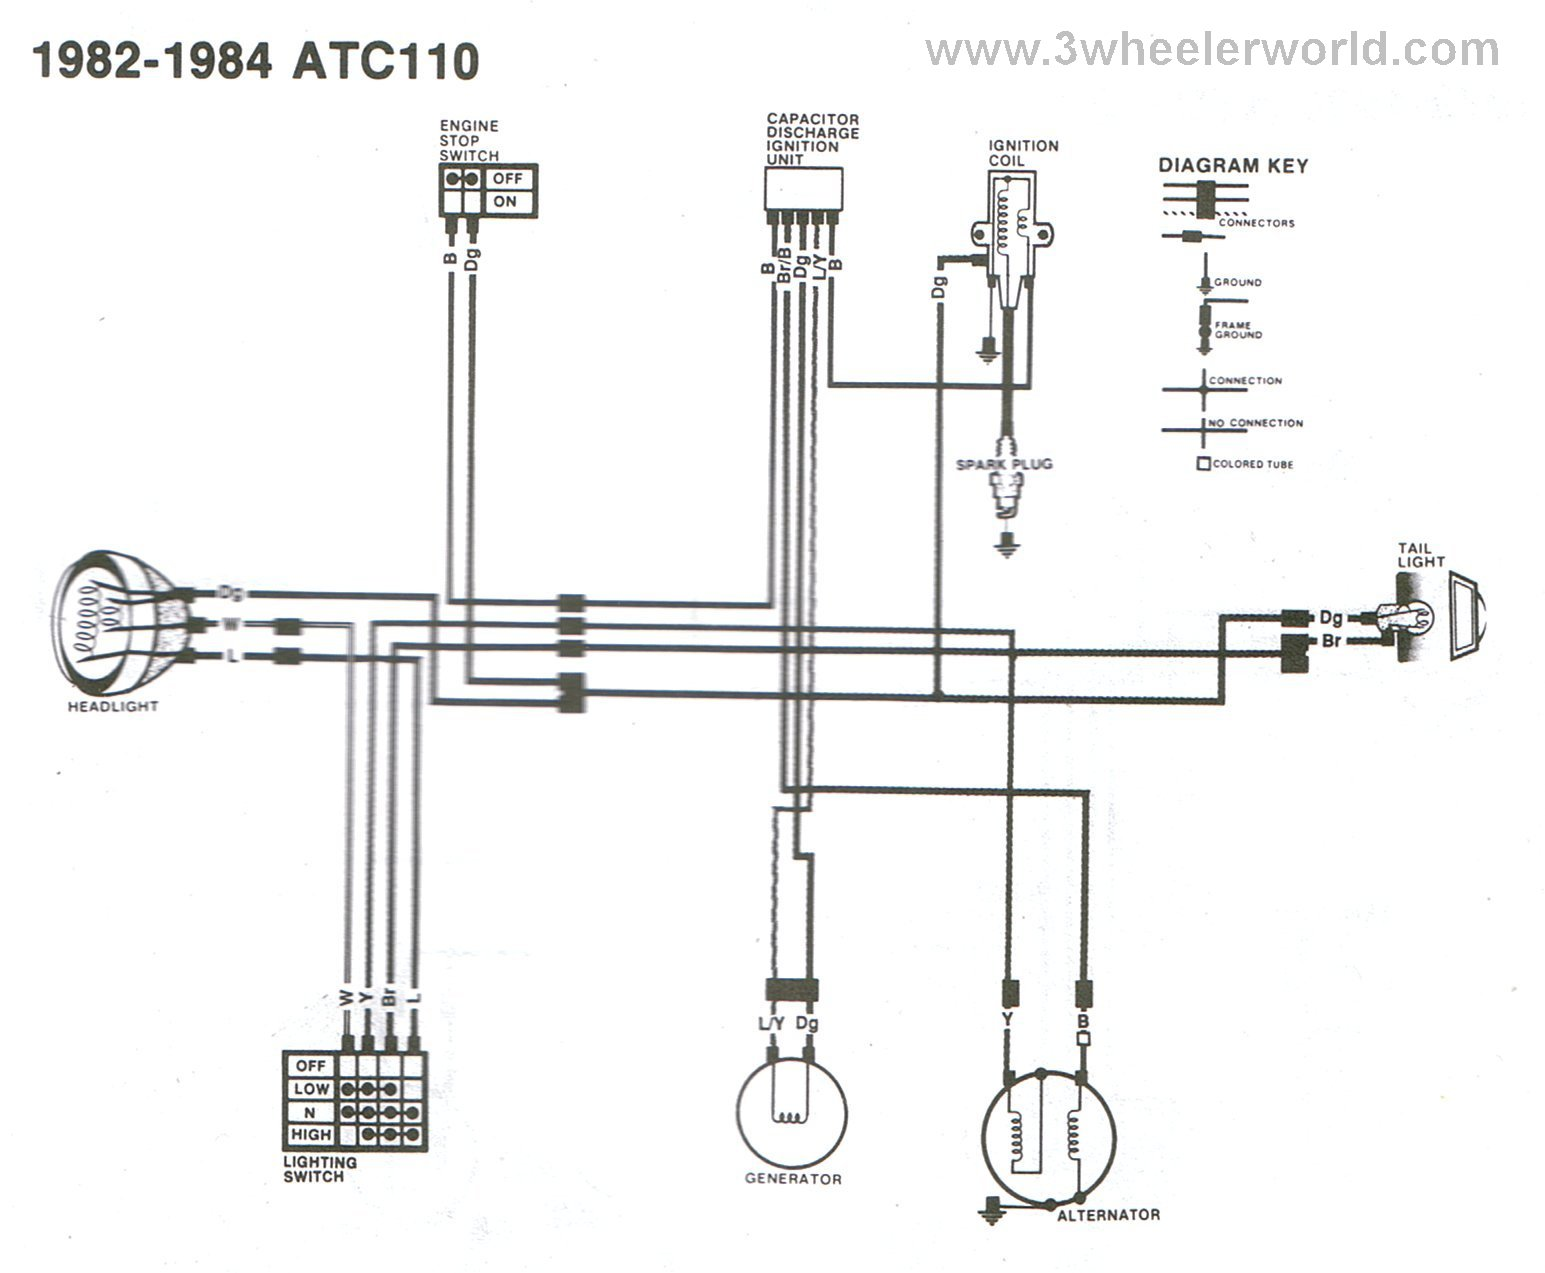 1984 wiring diagram 3 wheeler world tech help honda wiring diagrams atc110 1982 thru 1984